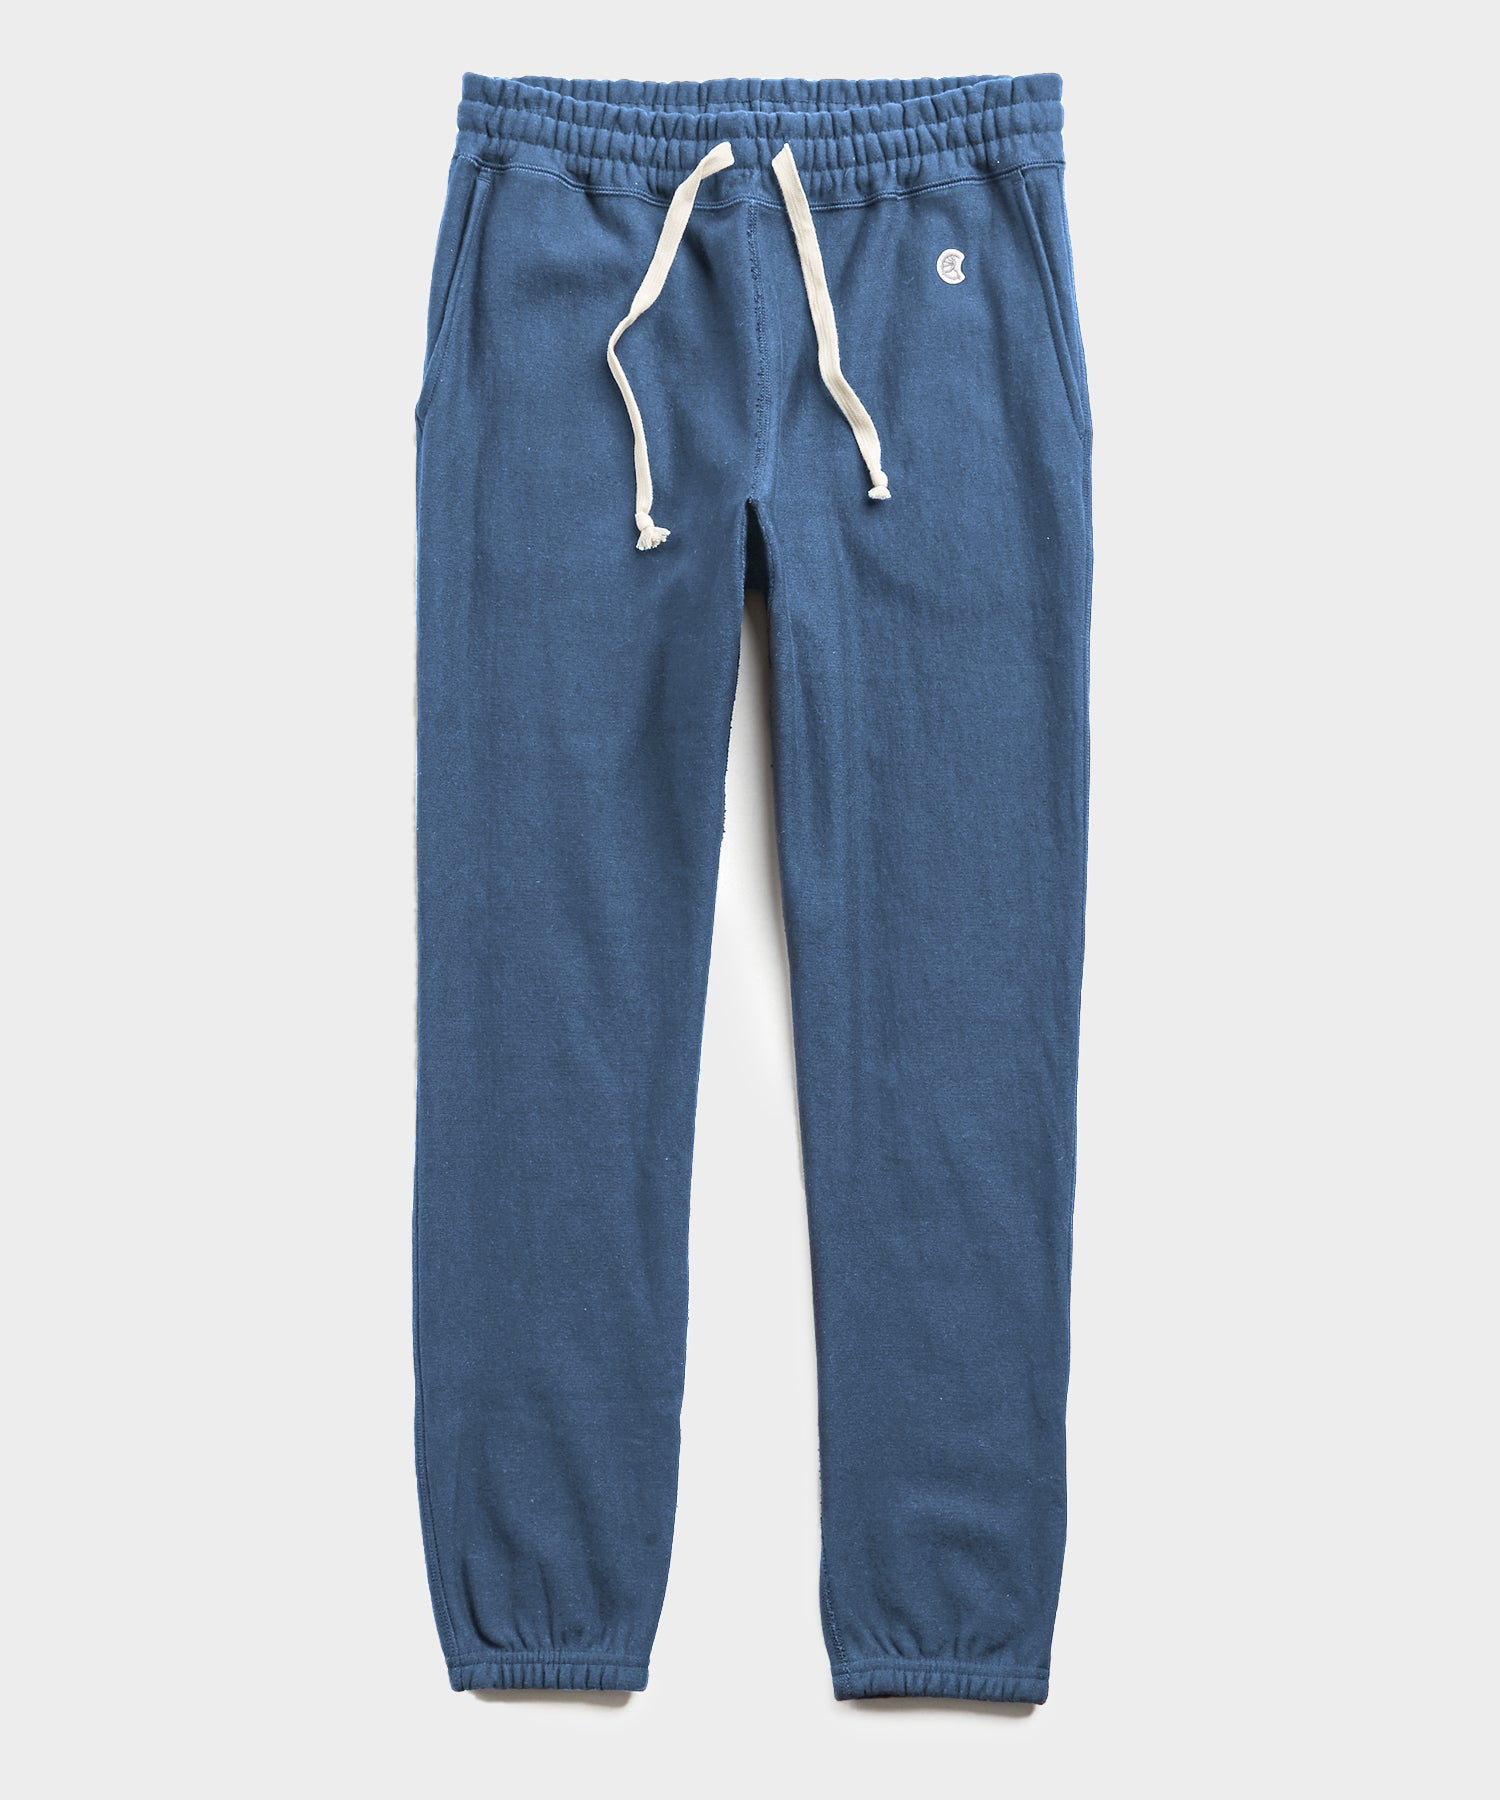 Lightweight Classic Sweatpant in Cadet Blue